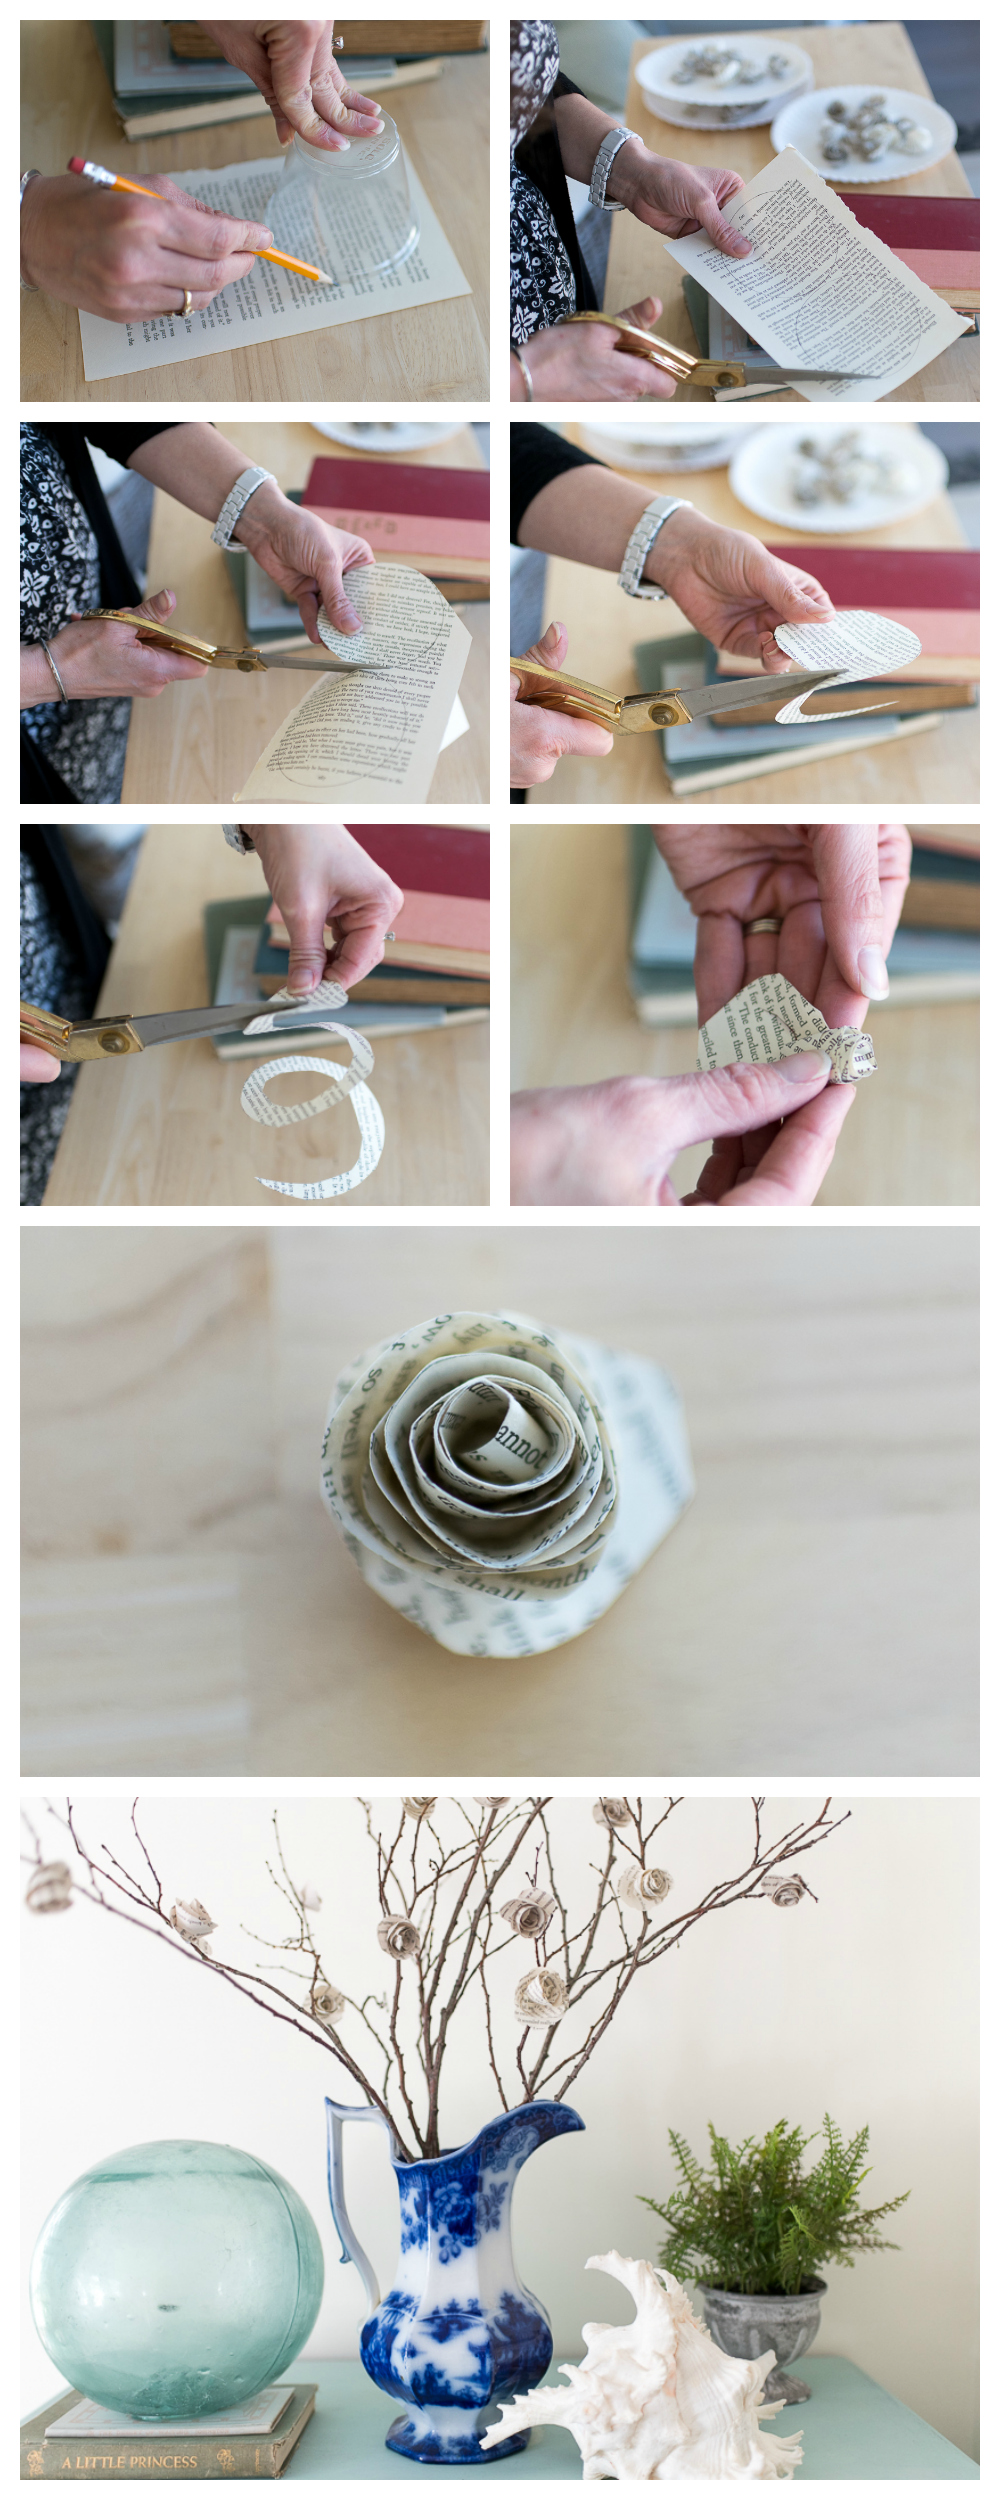 Easy Step by Step for Paper Roses - Finding Silver Pennies